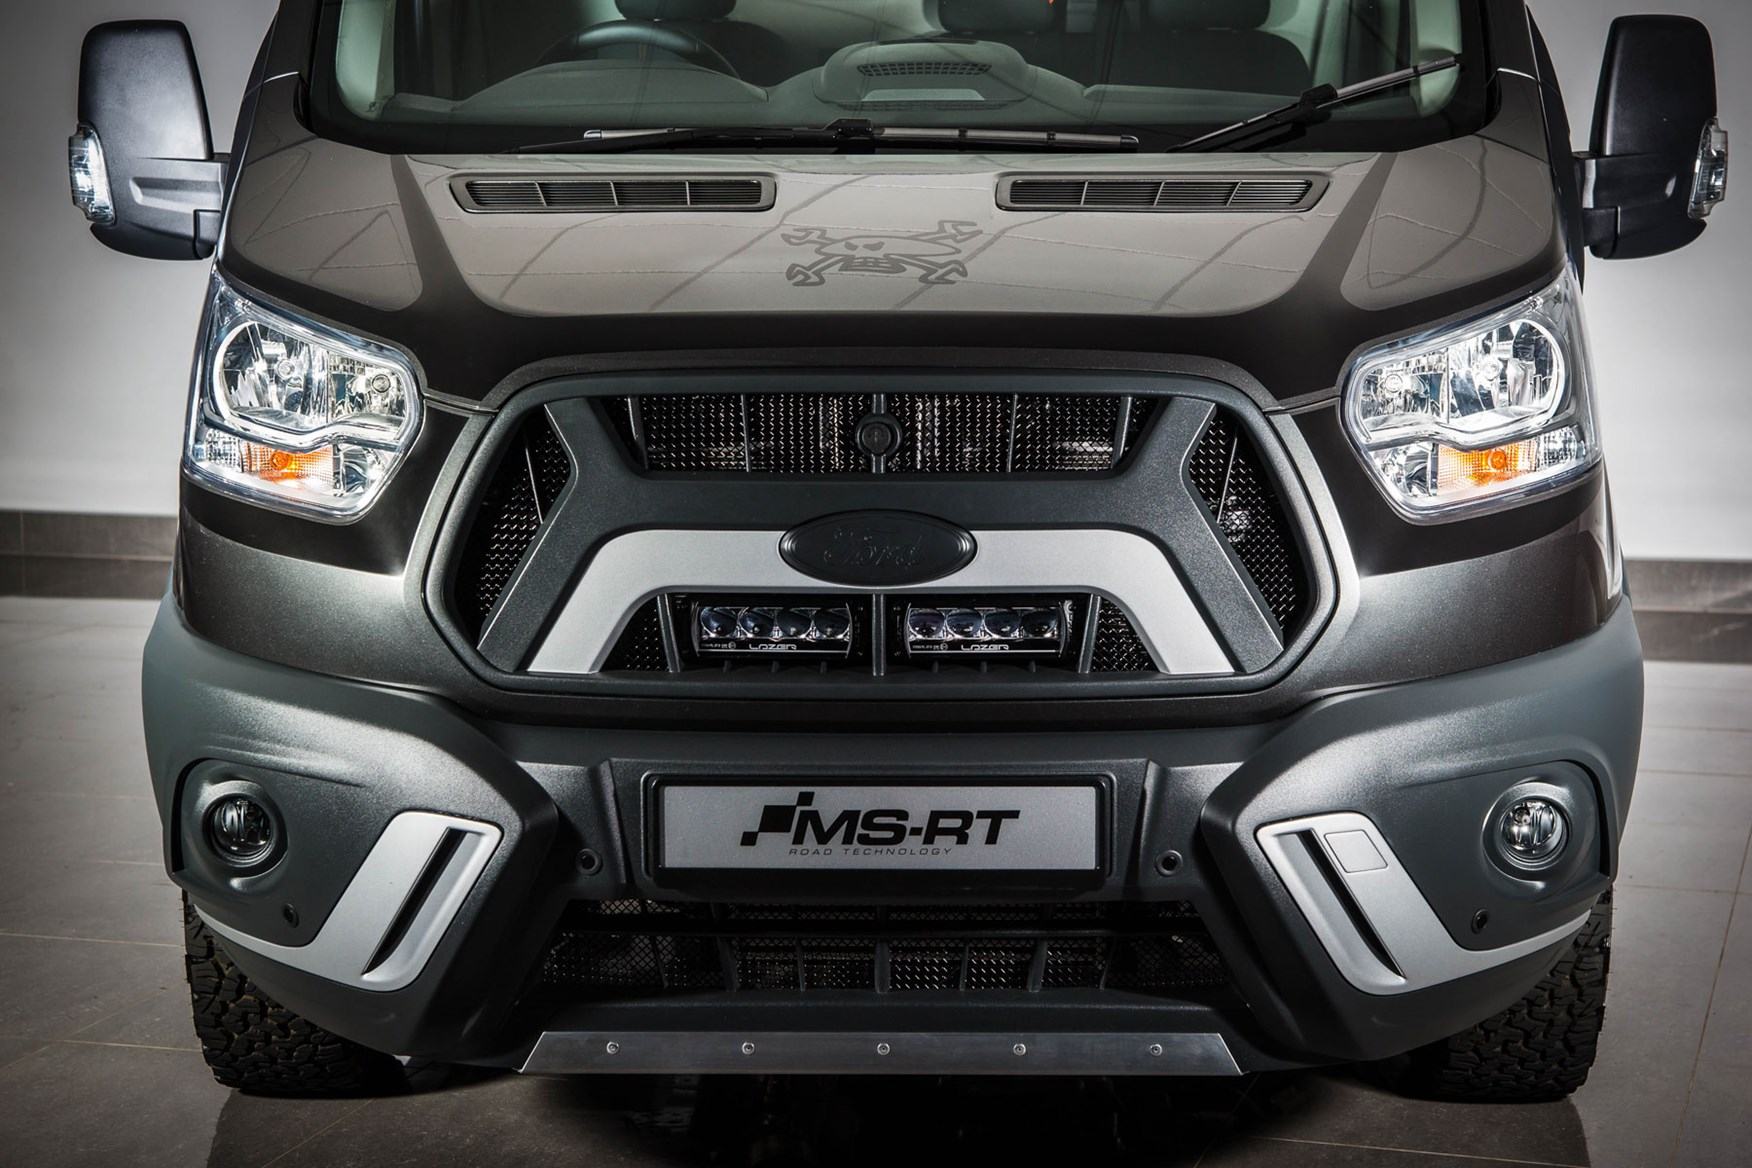 642a100bb8 ... Ford Transit Guy Martin Edition review - front end and bumper detail ...